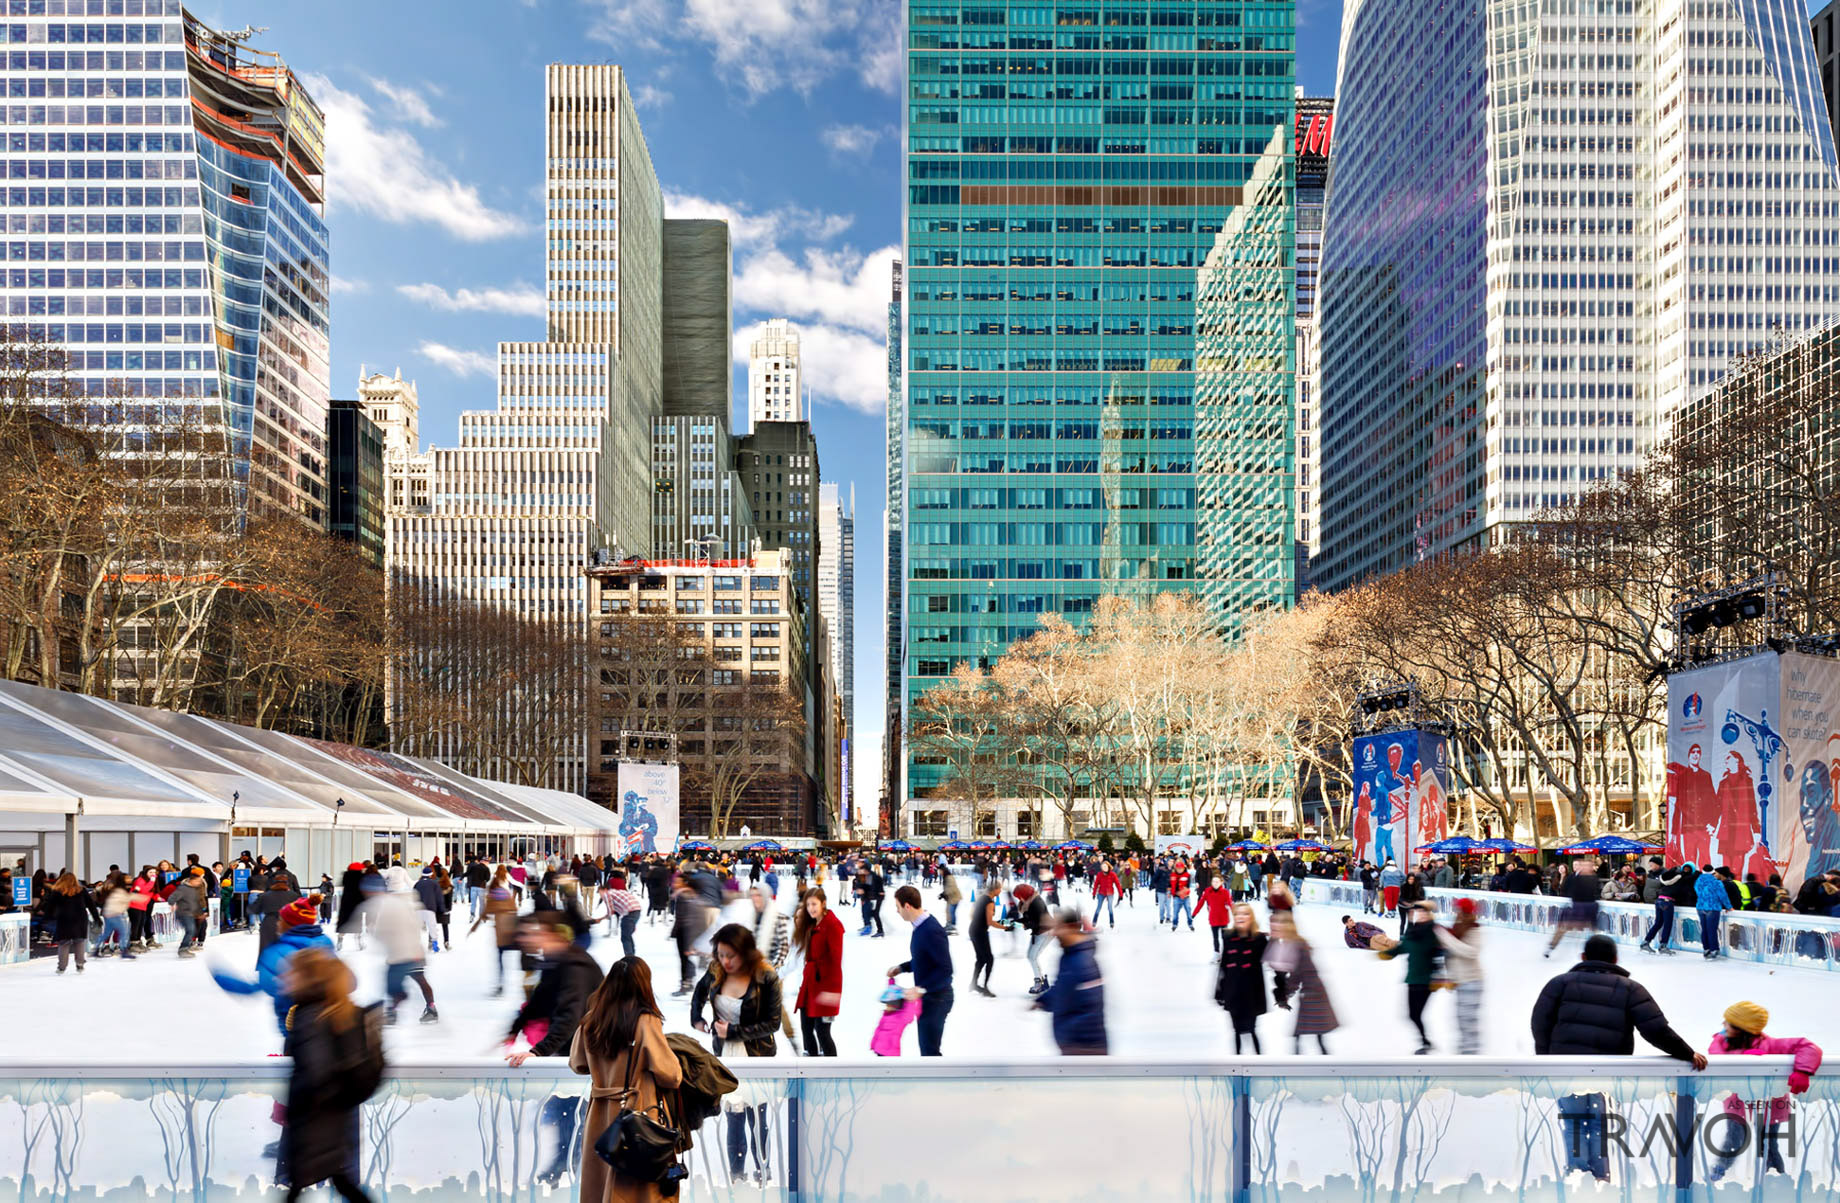 Skating at Bryant Park in New York City